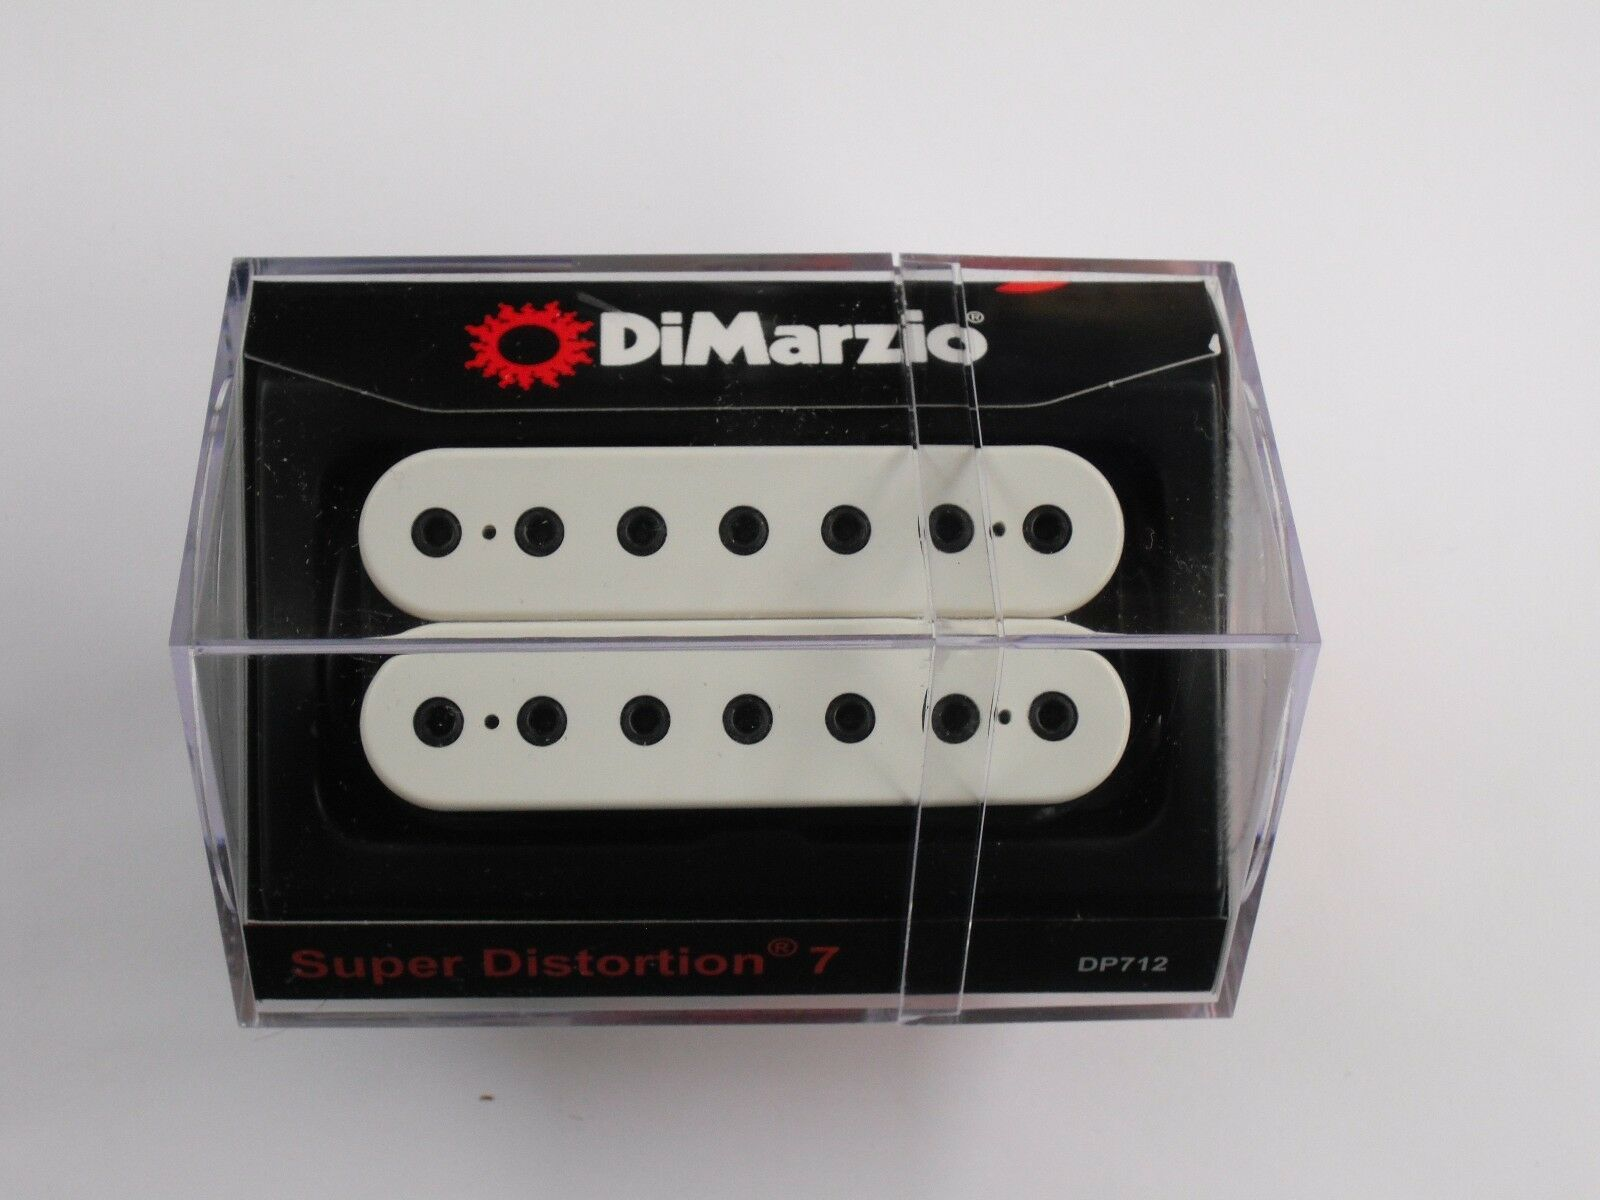 Dimarzio Super Distortion Bridge - Best Bridge 2018 on